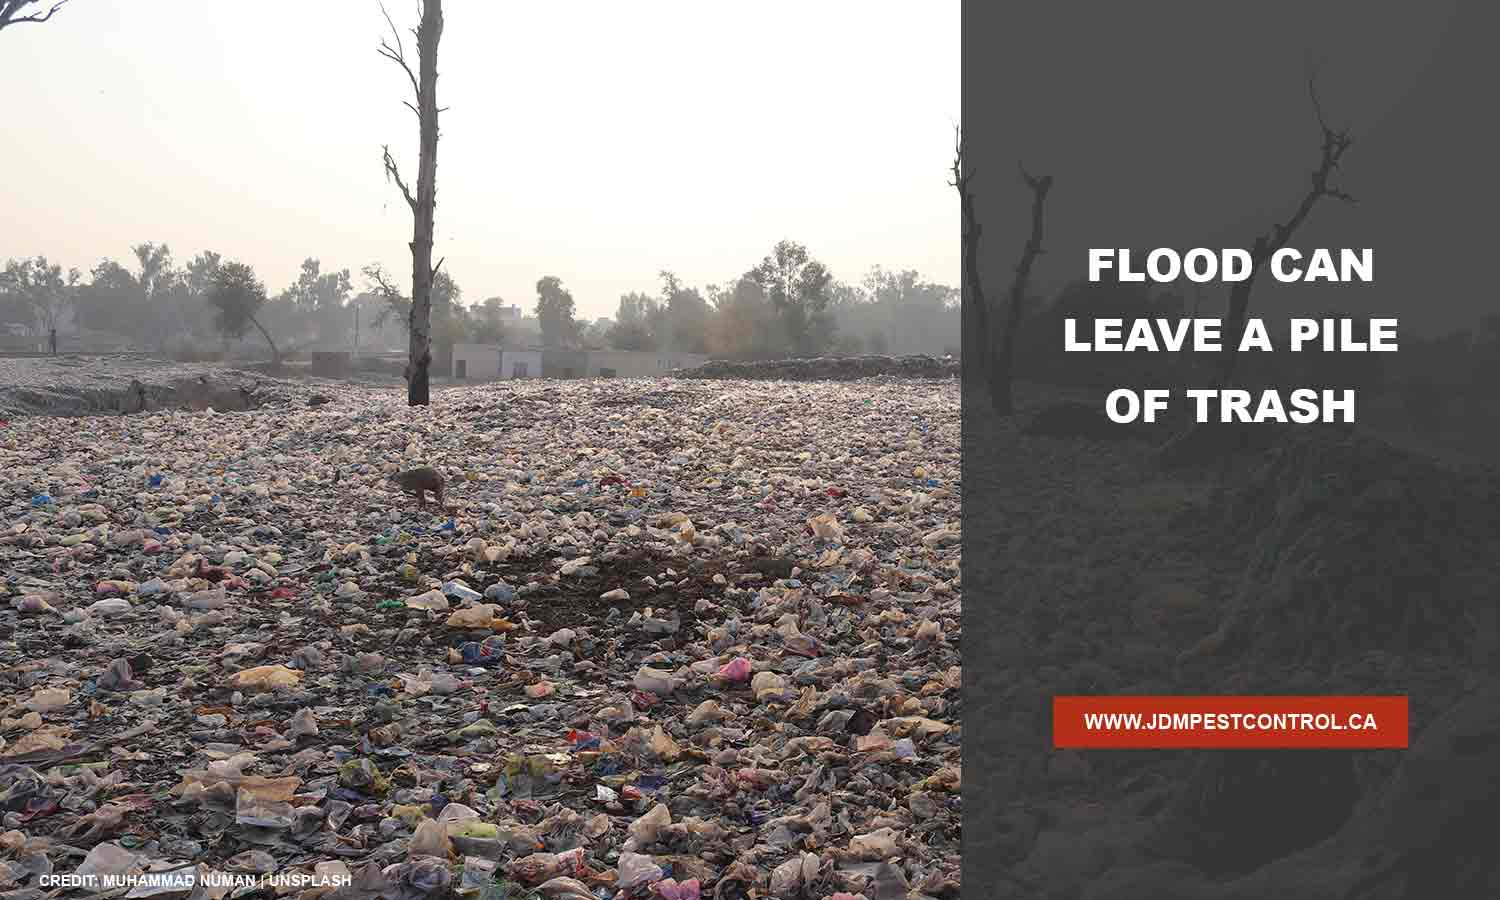 Flood can leave a pile of trash